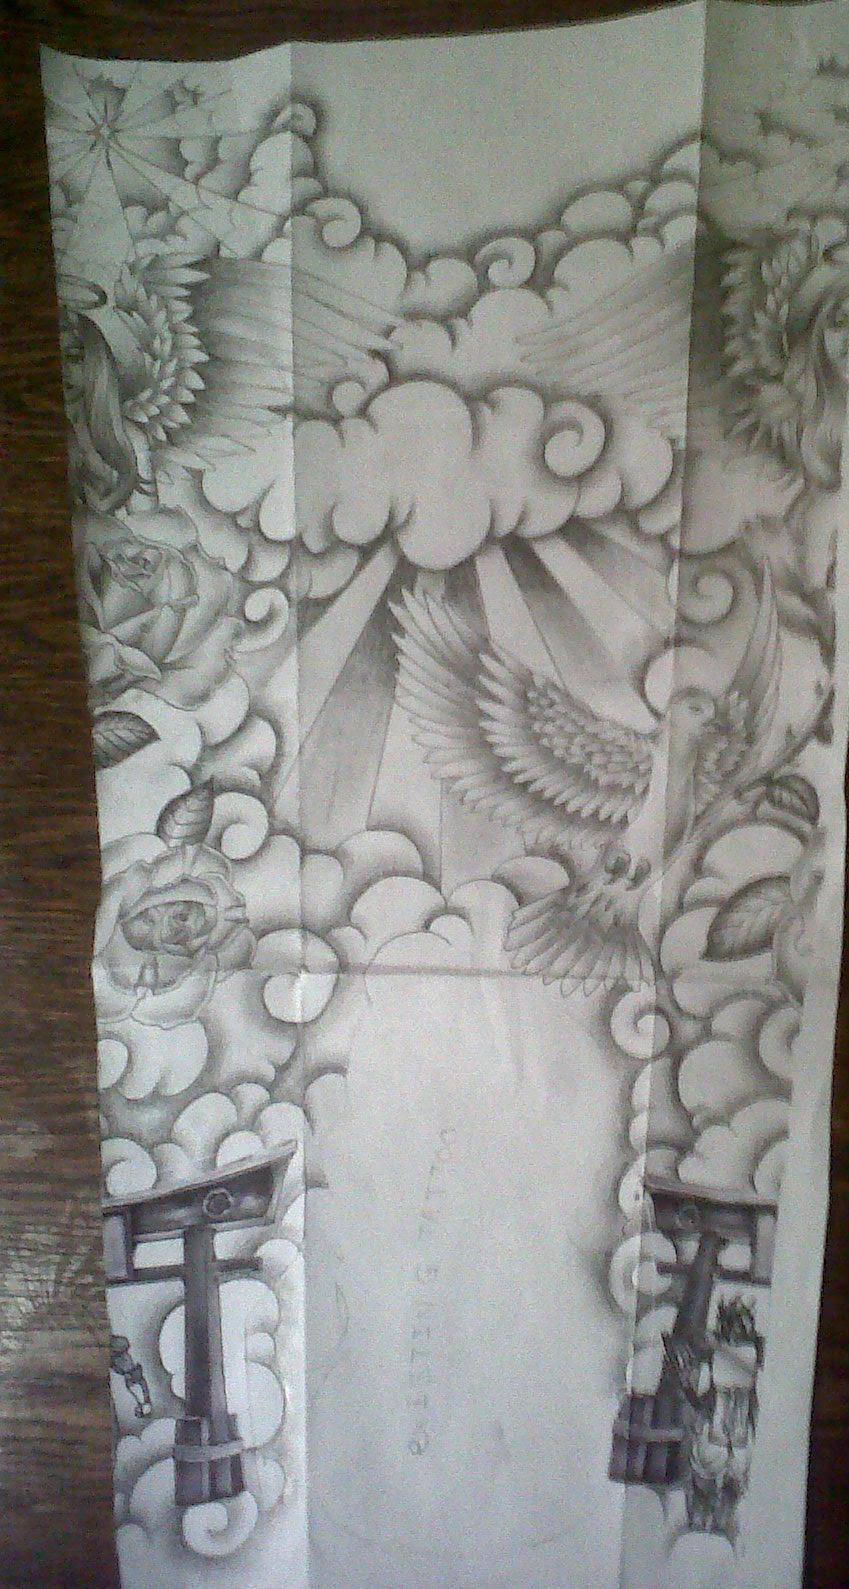 Pictures Of Religious Tattoo Sleeve Sketches Kidskunstinfo